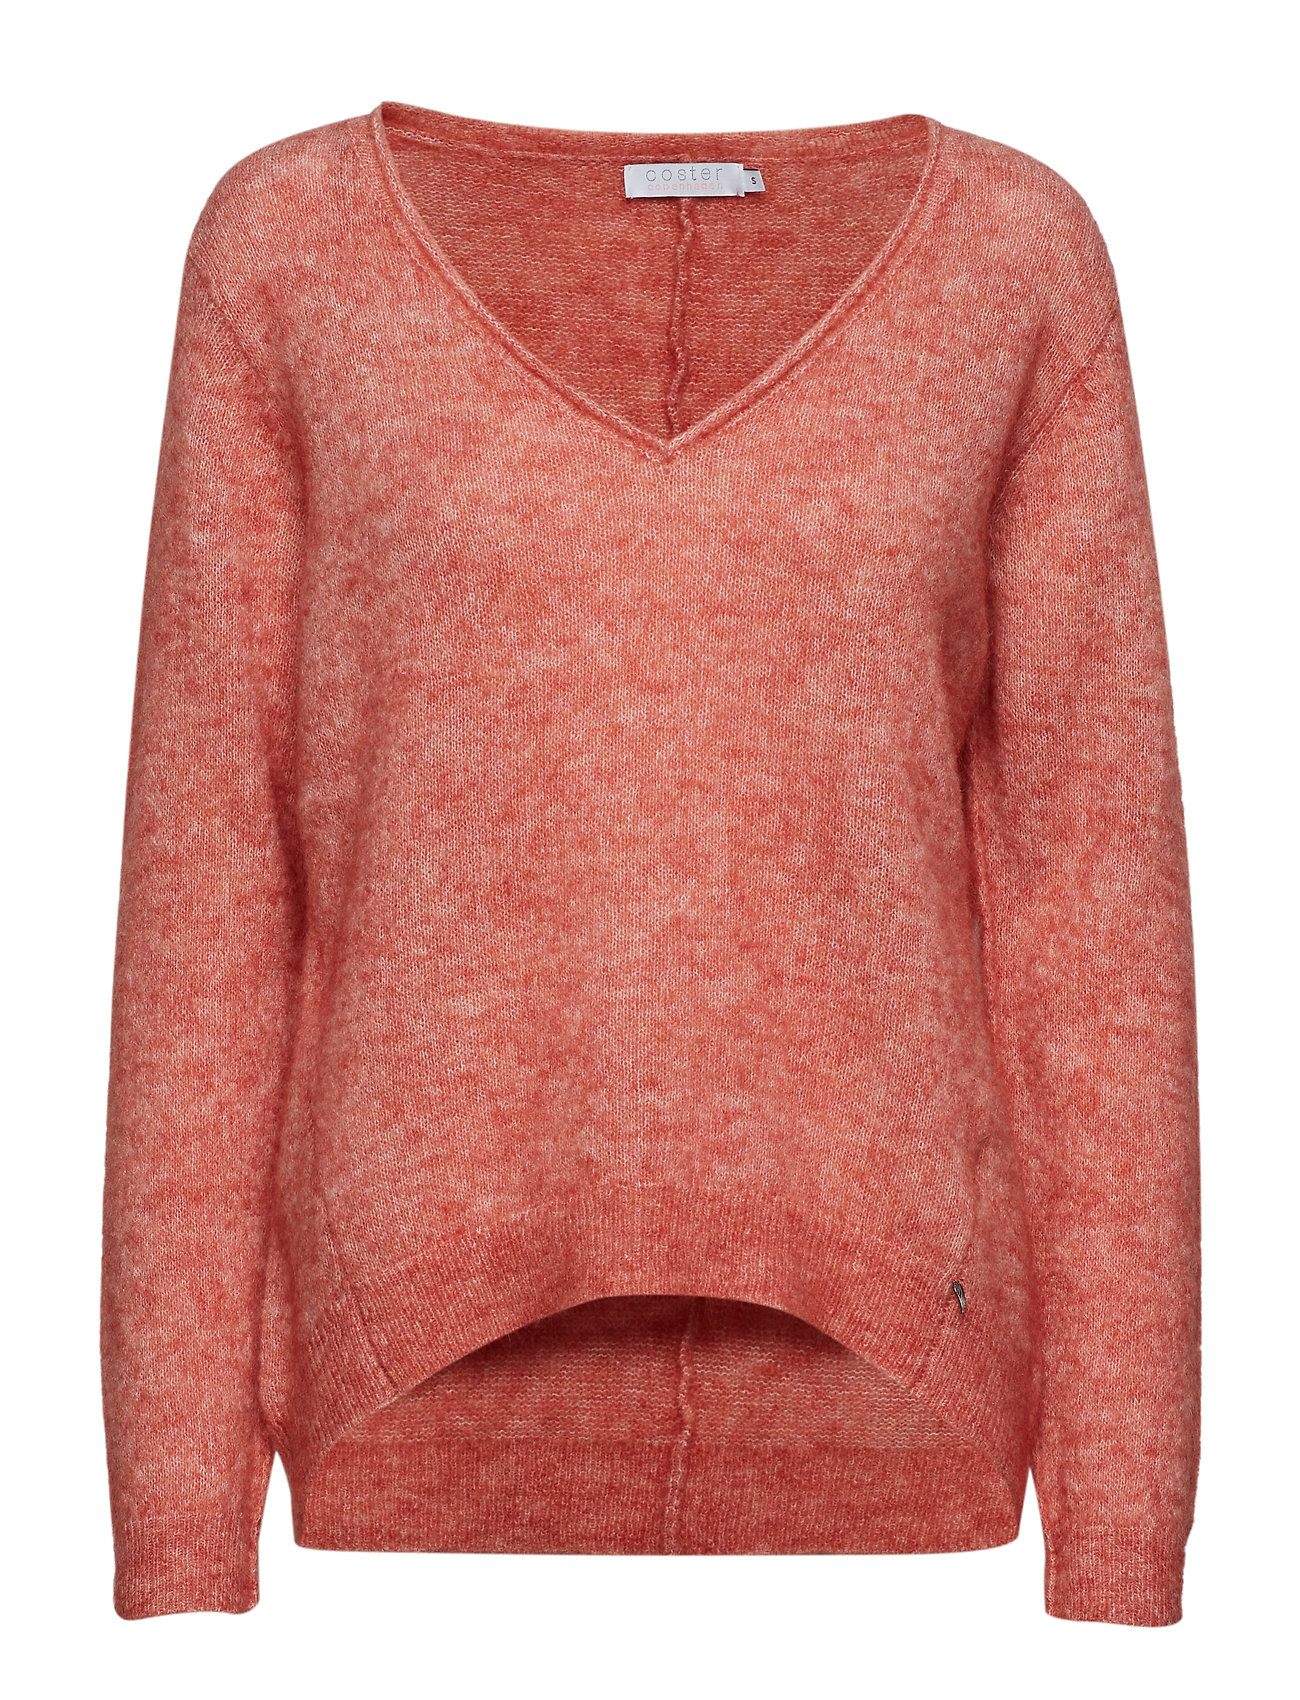 Coster Copenhagen Sweater w. v-neck in crystal mohair - CANYON ROSE